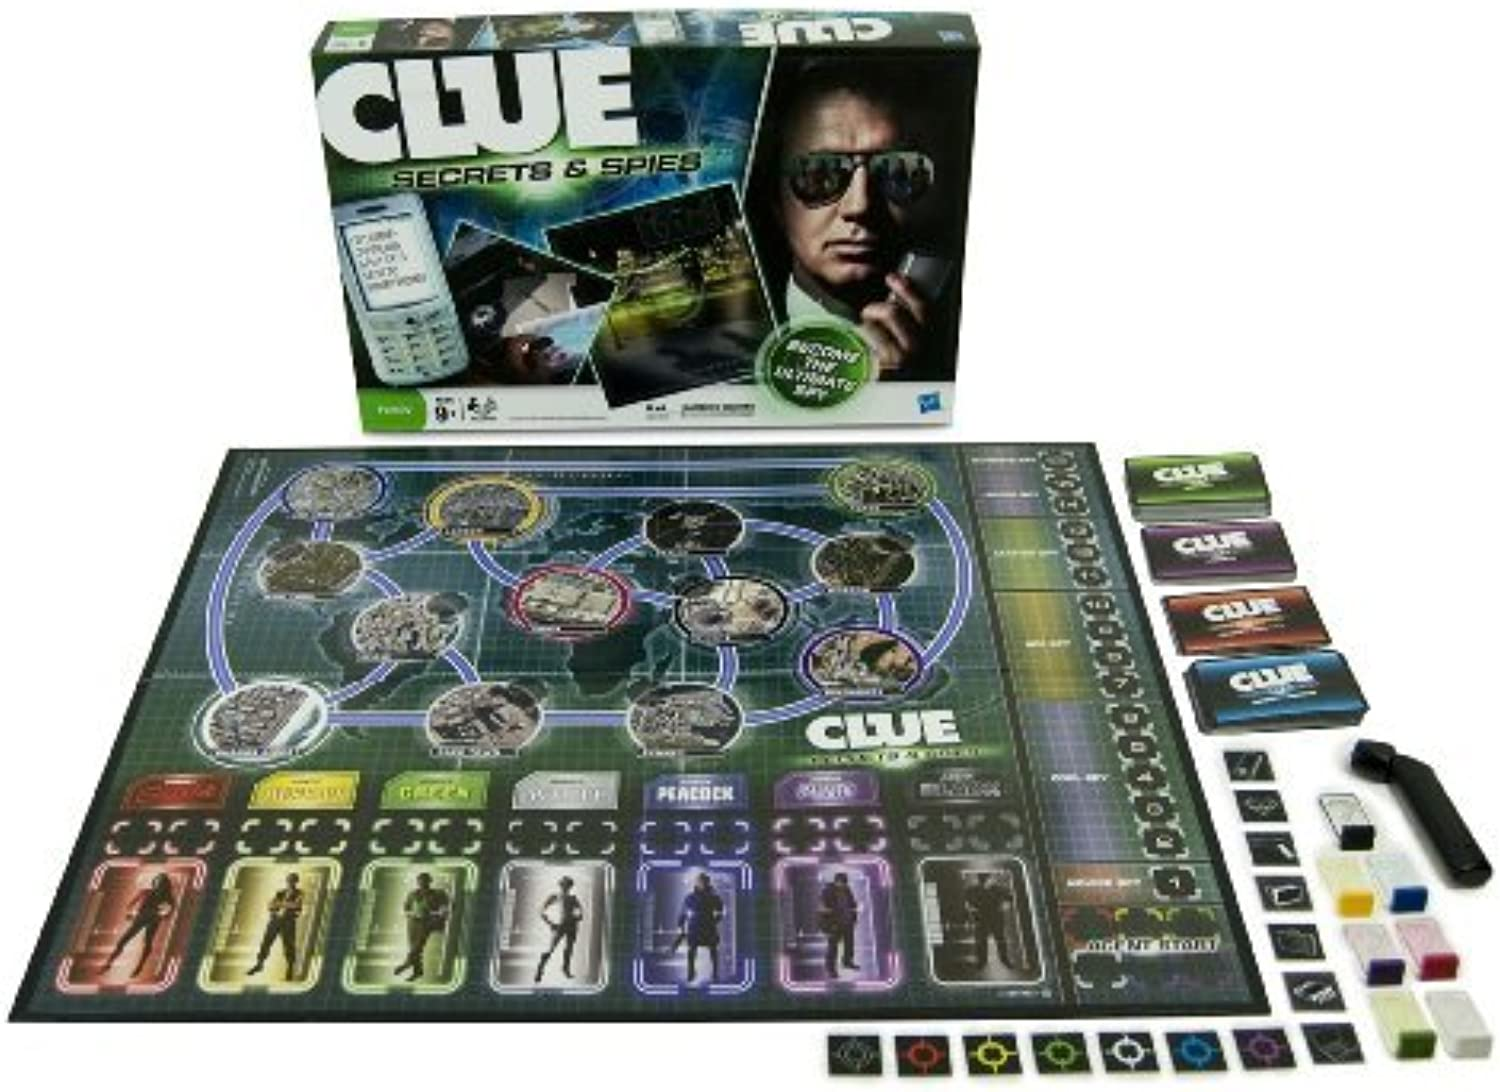 Clue Secrets and Spies by Clue